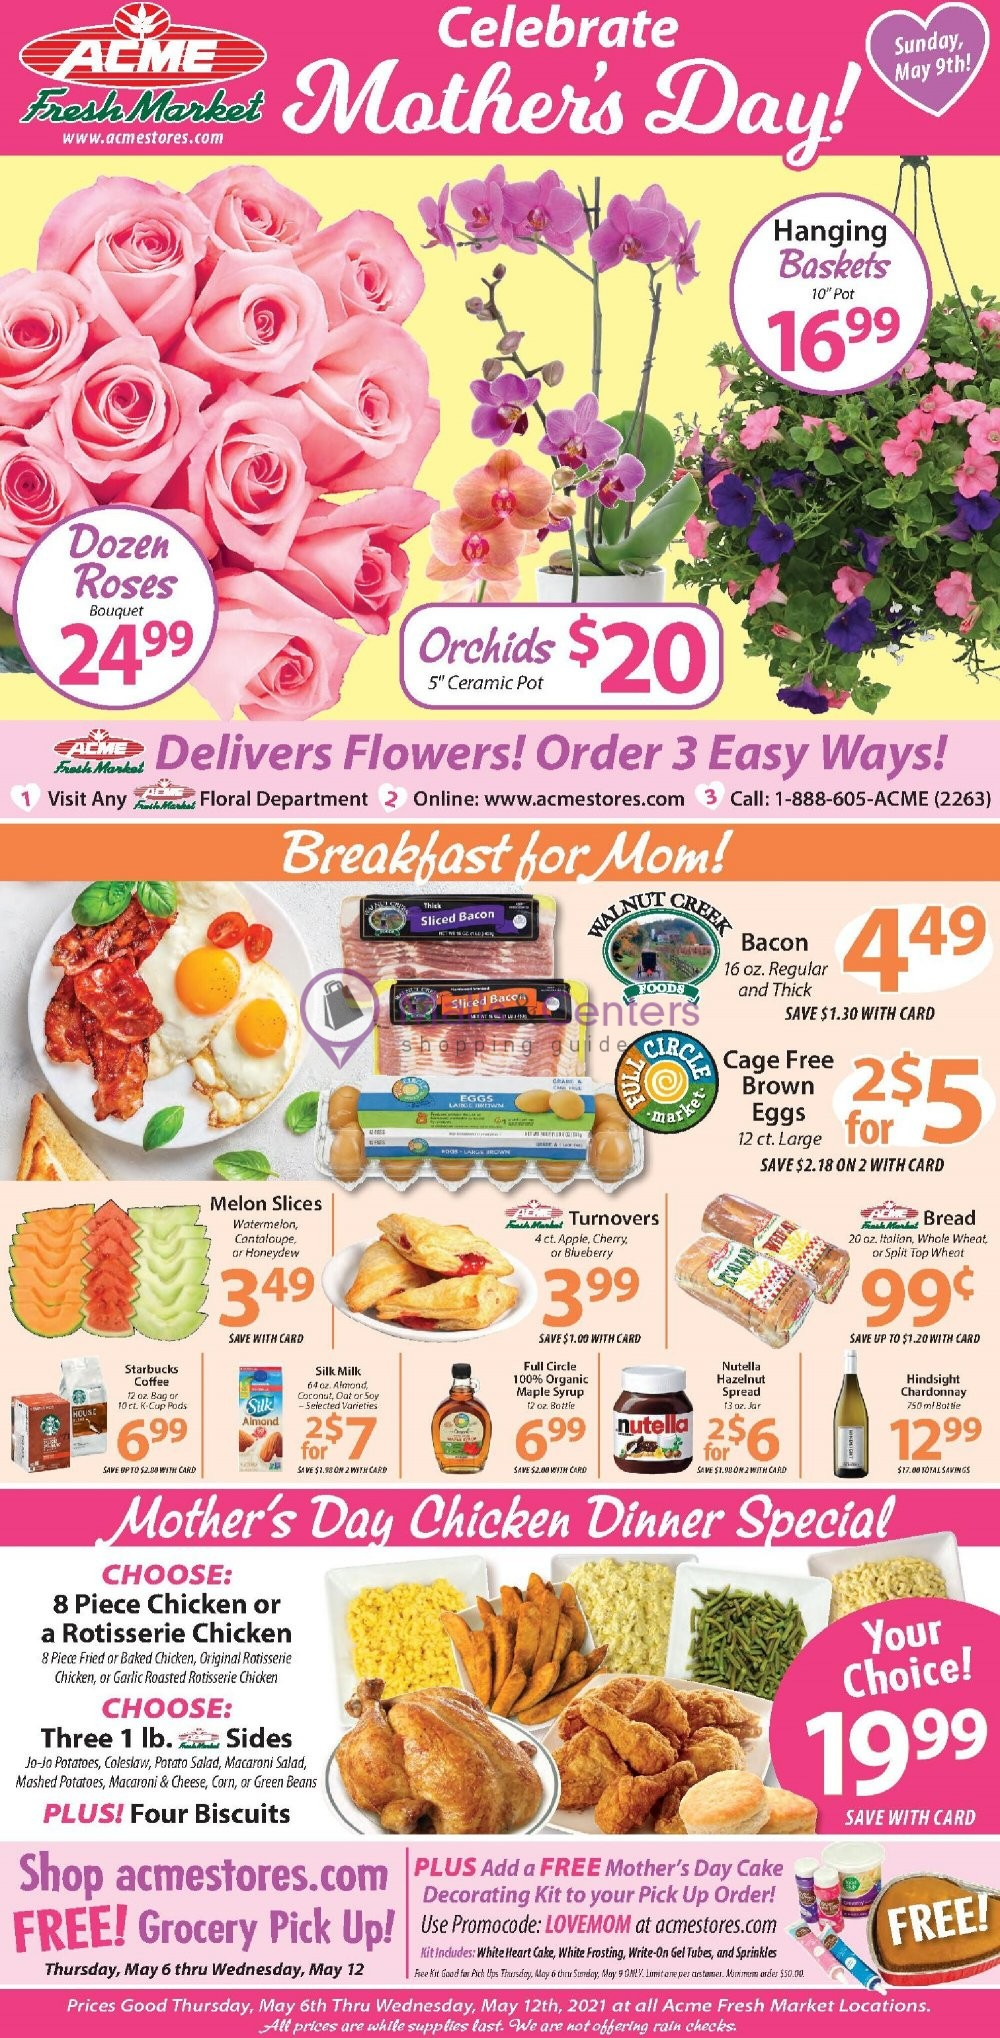 weekly ads Acme Fresh Market - page 1 - mallscenters.com